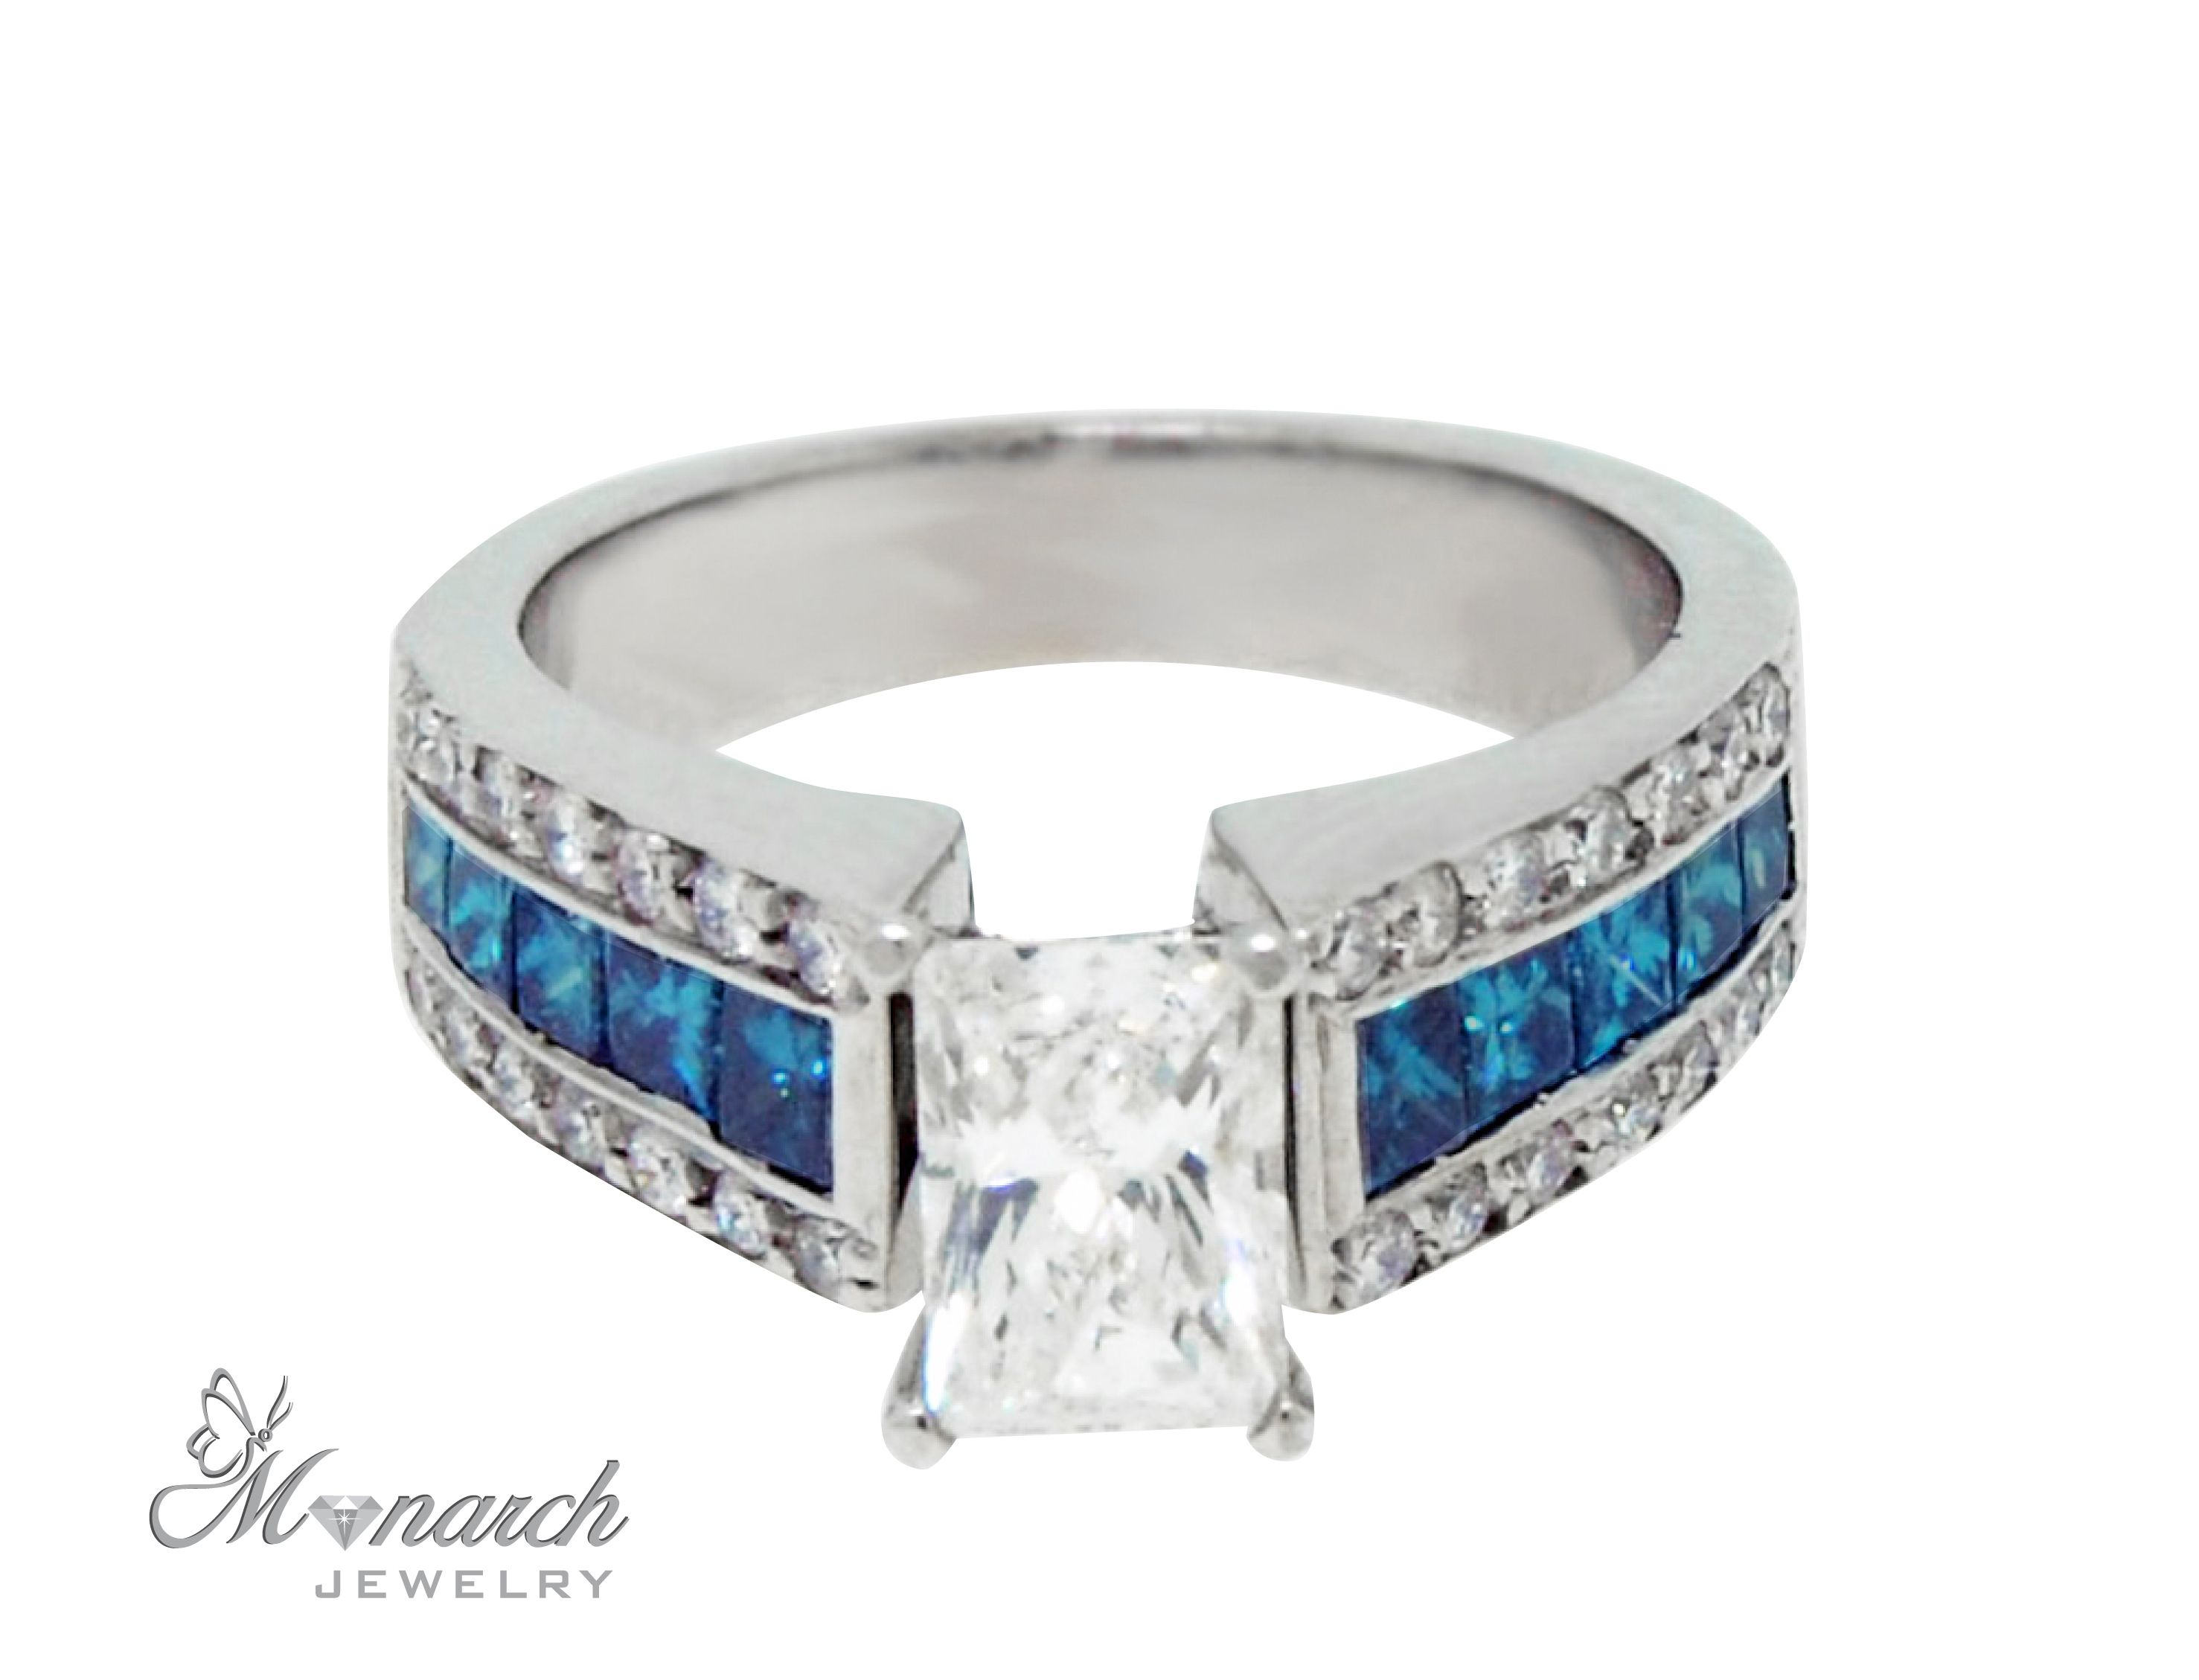 Monarch Jewelry Engagement Jewelry Diamond Wedding Rings